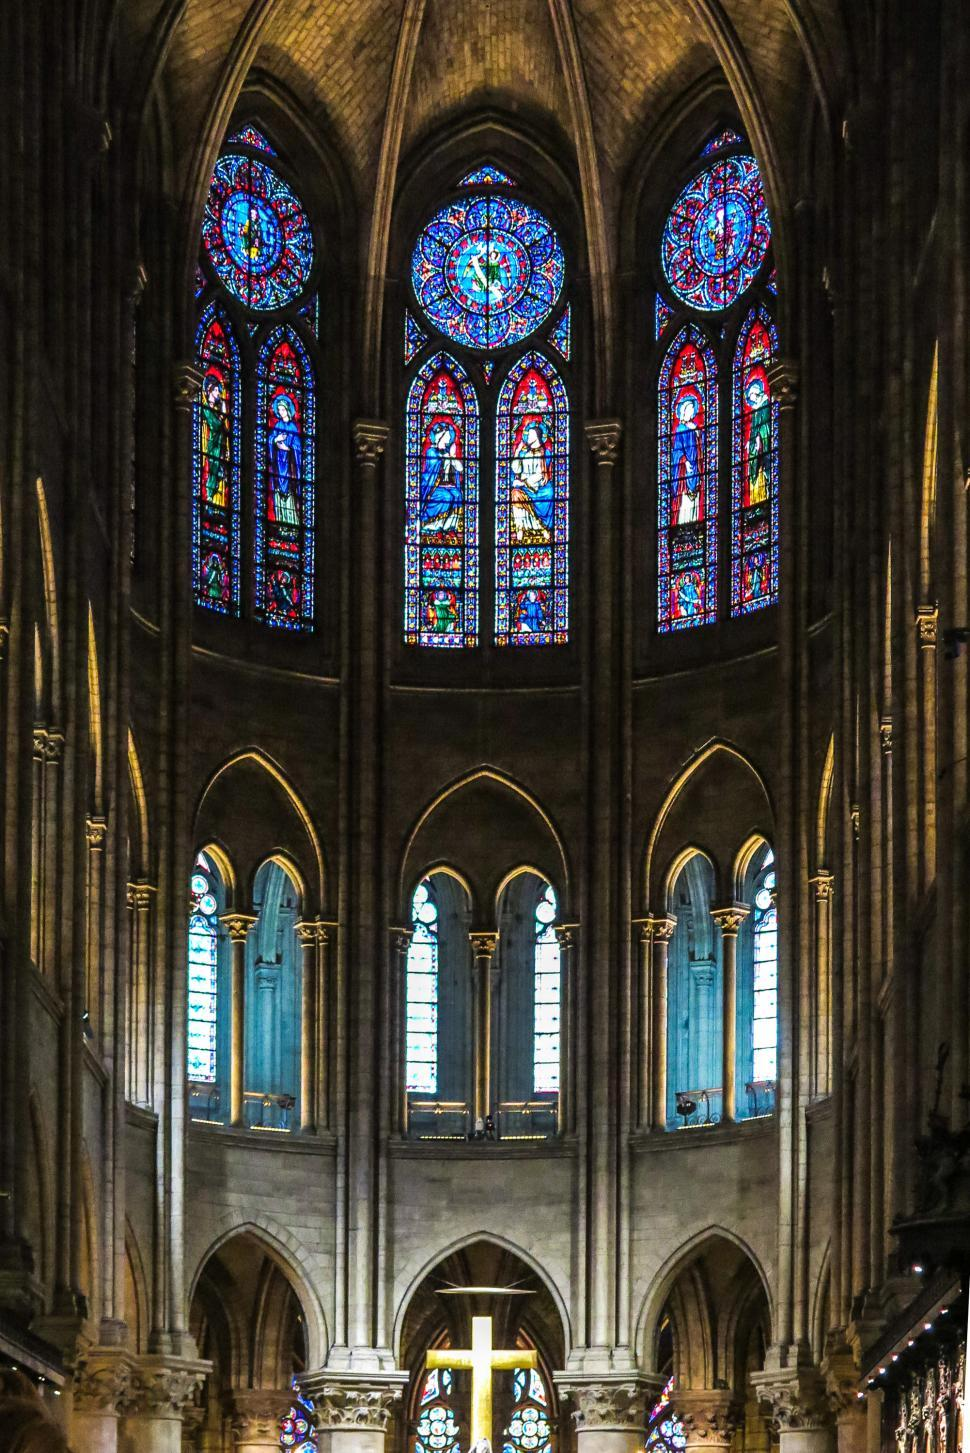 Download Free Stock HD Photo of Interior of Notre Dame cathedral Online